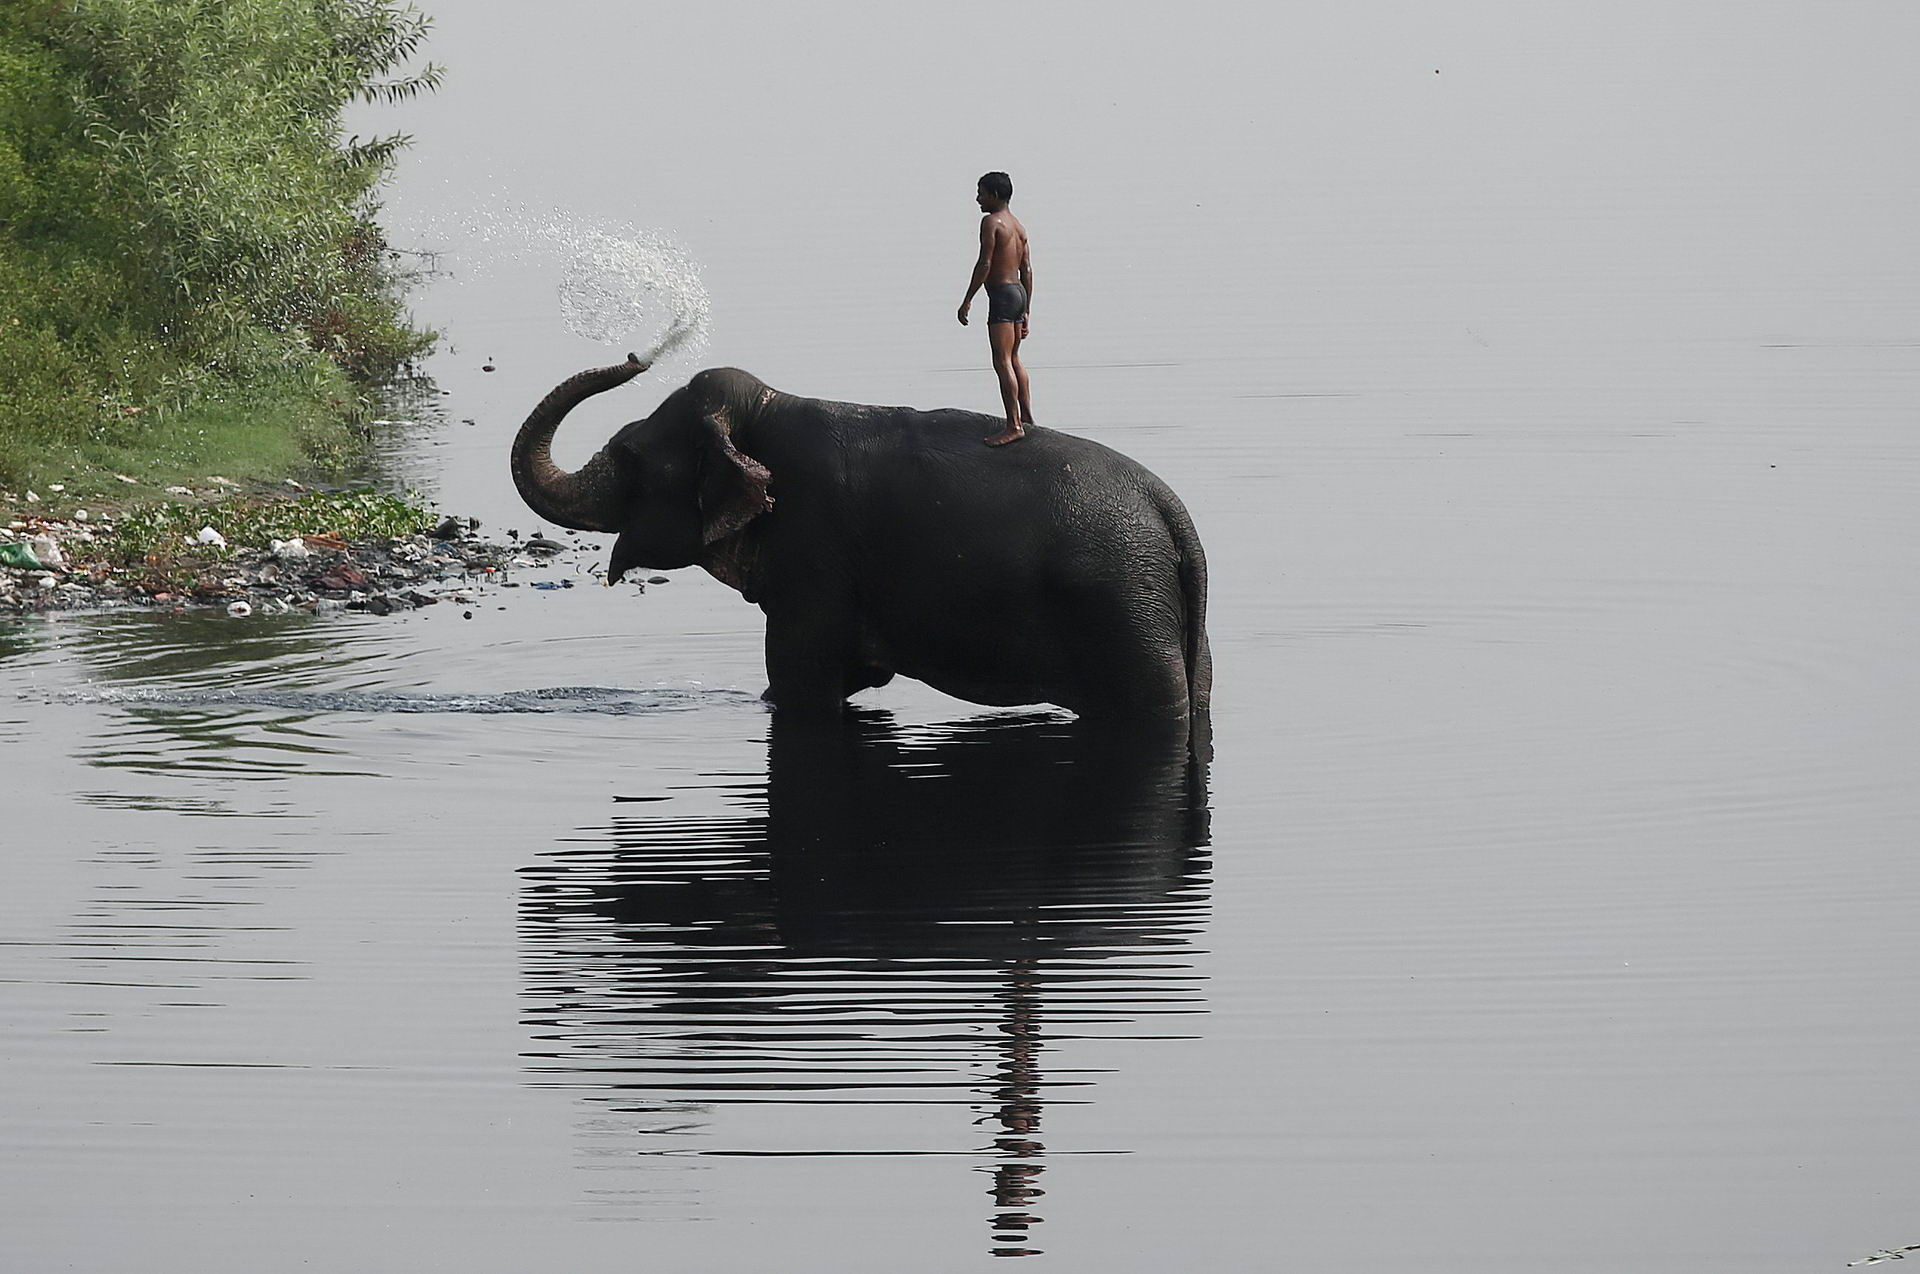 A mahout rides his elephant in the Yamuna river on a hot summer day in New Delhi